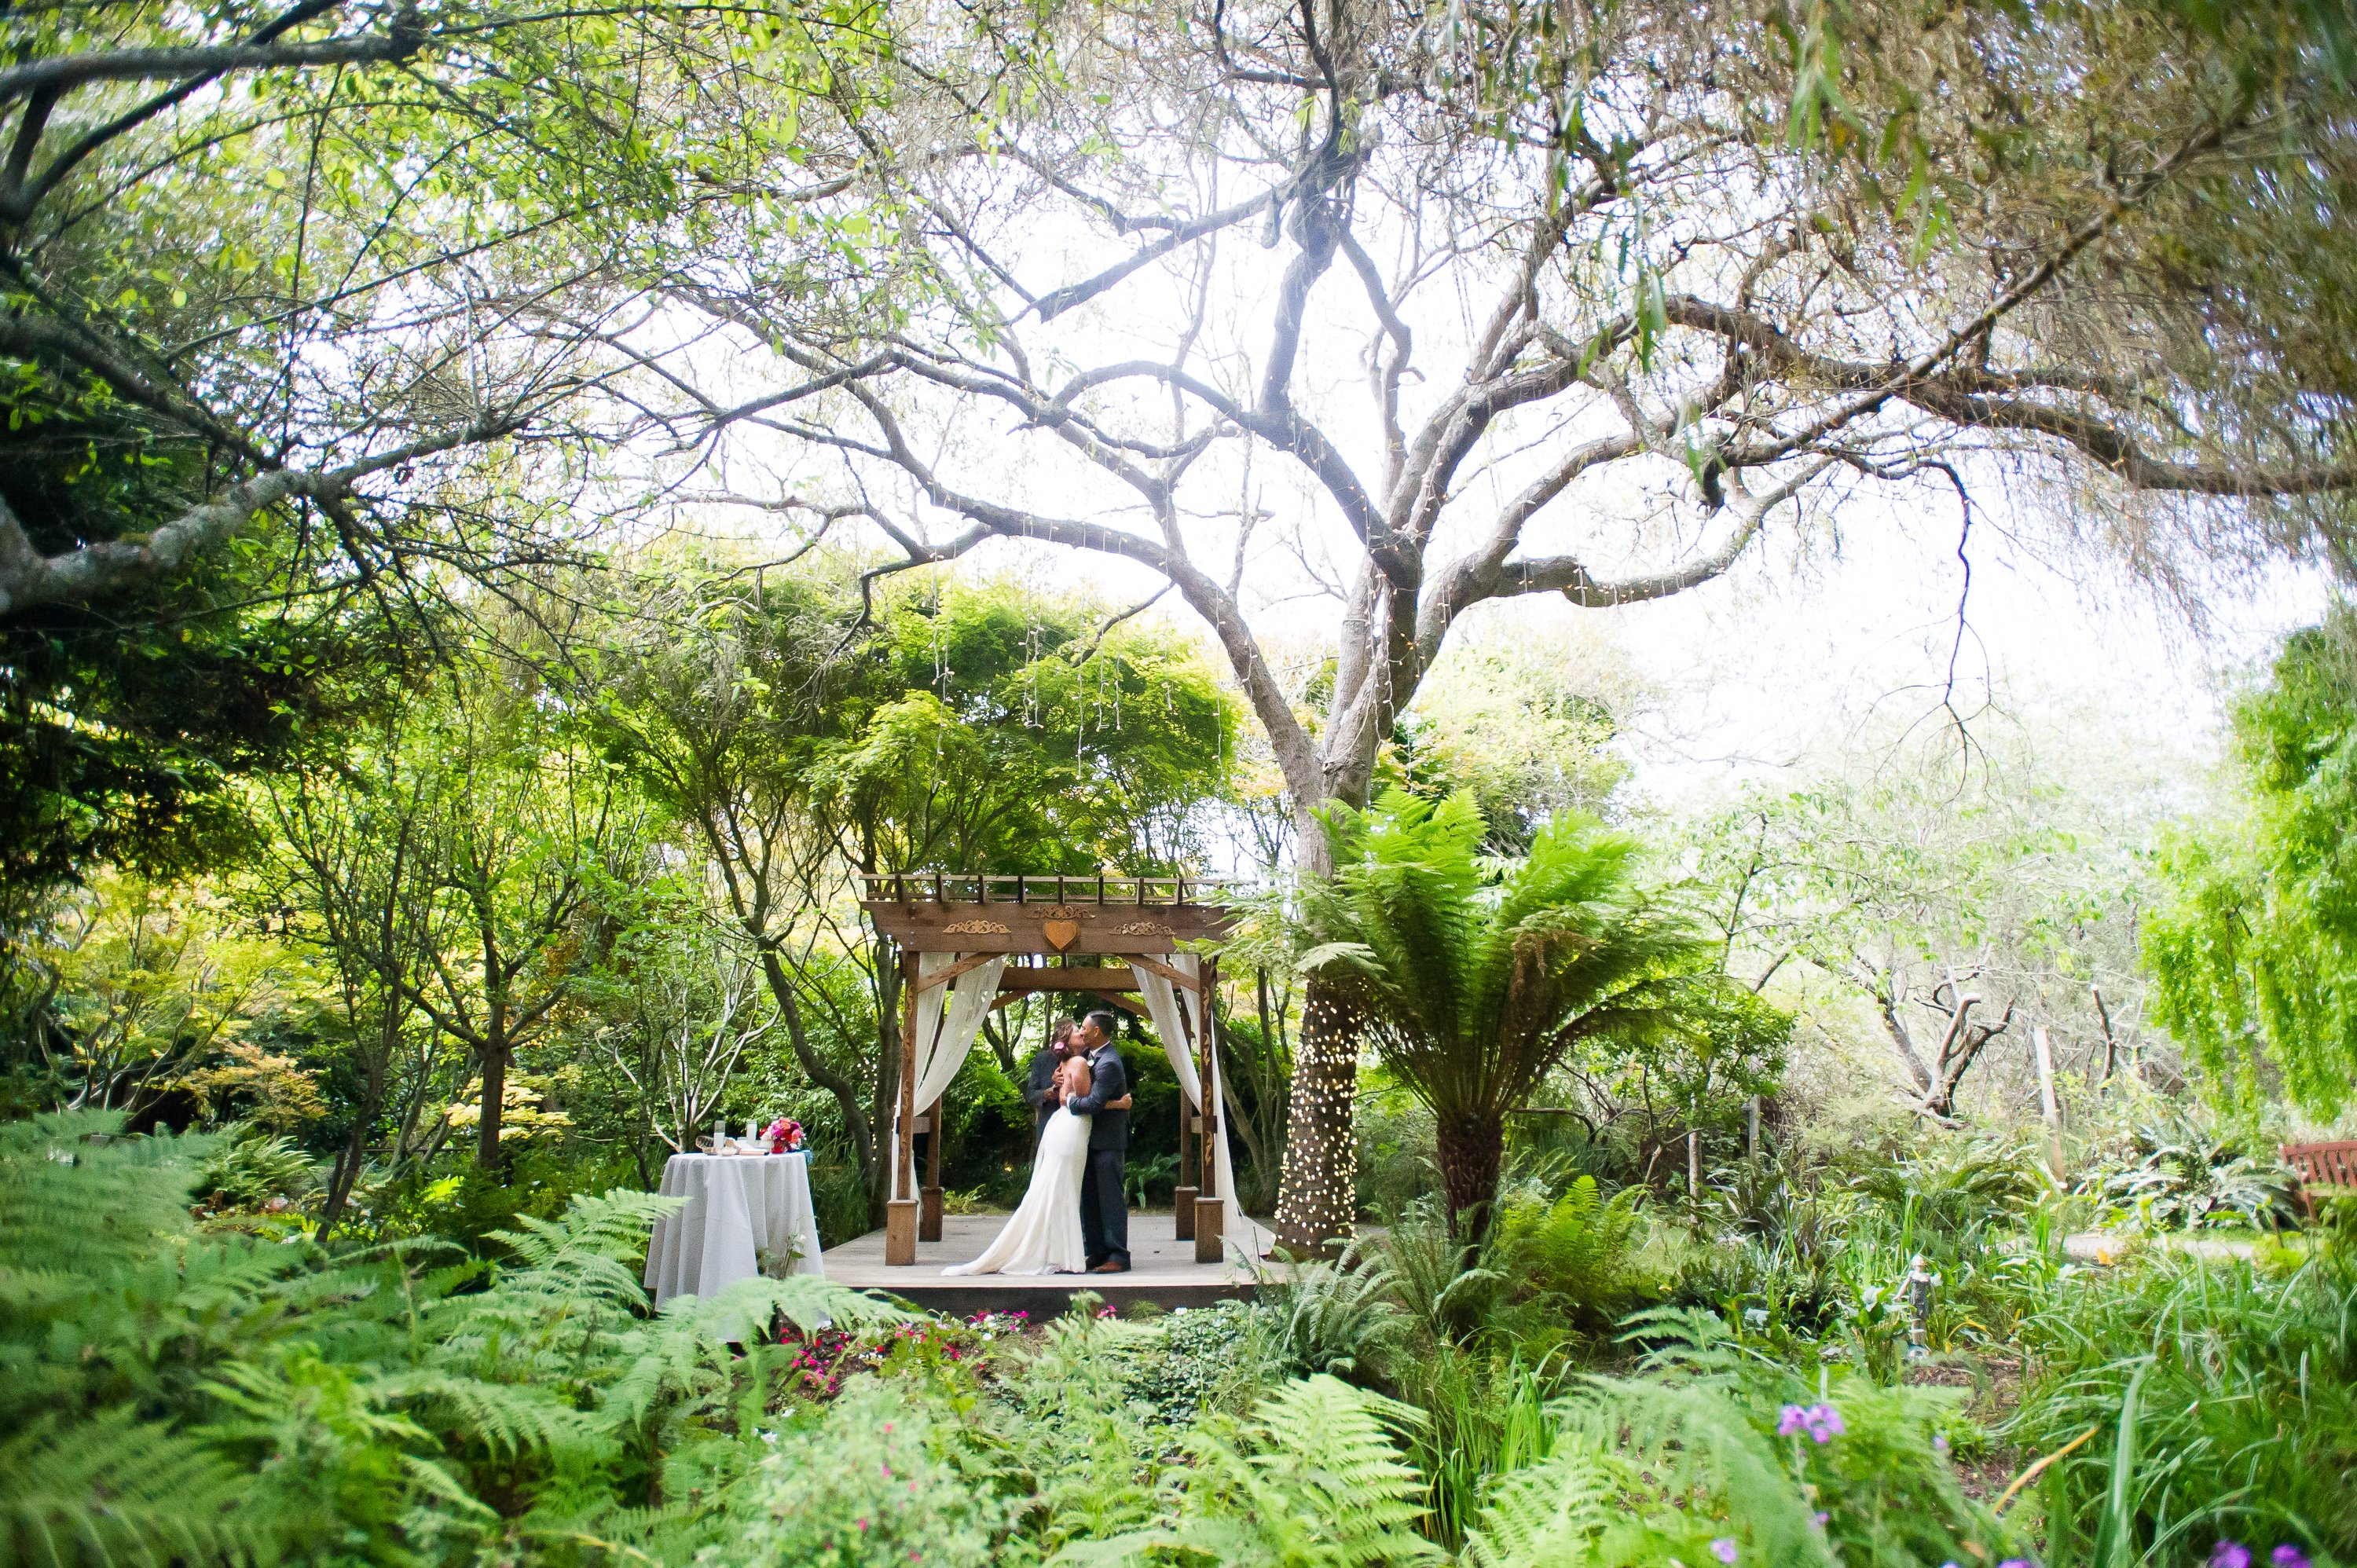 Secret Garden: Christina & Burton's Magical Wedding: Bodega Bay Secret